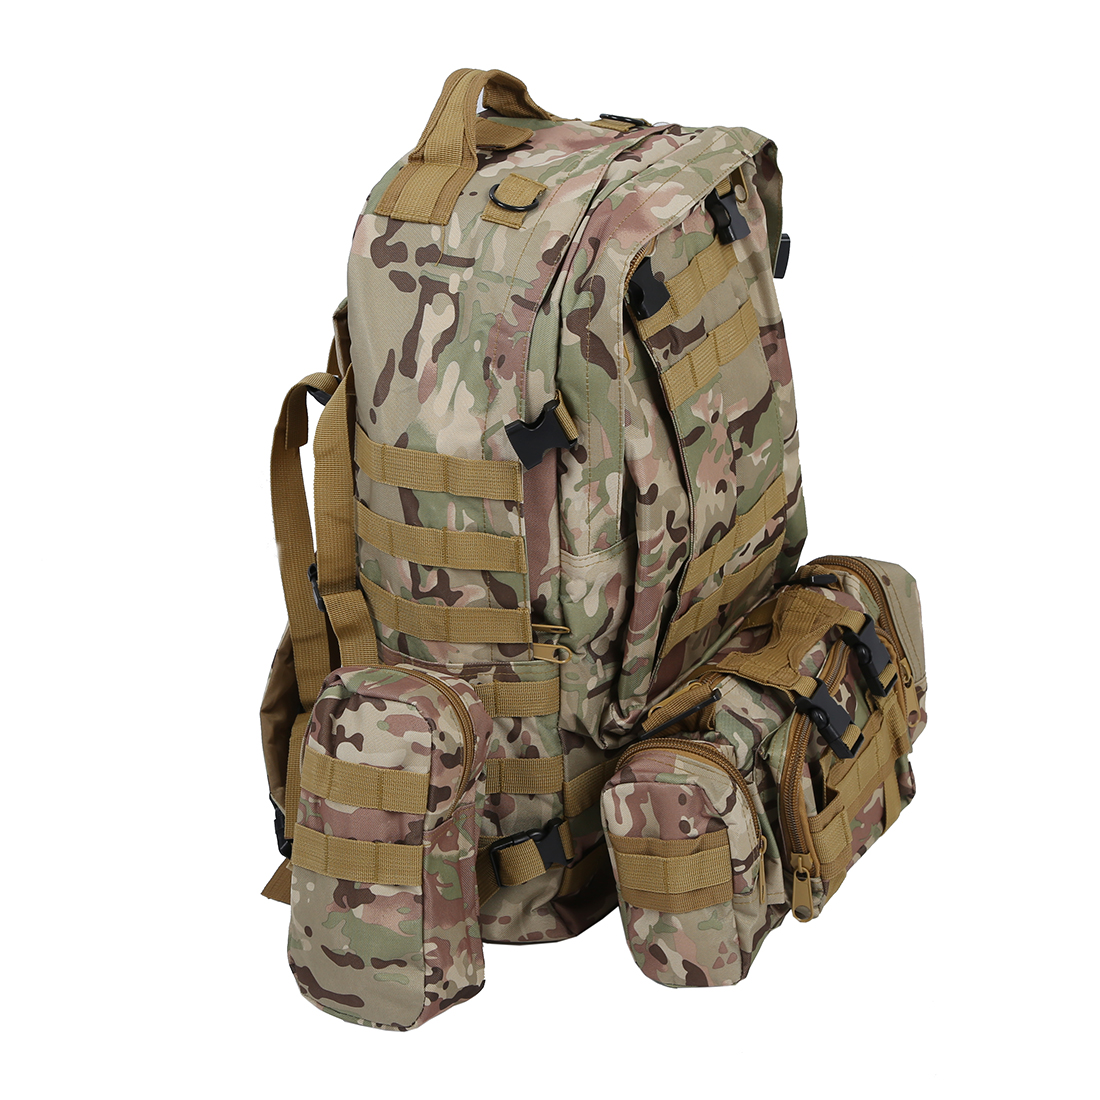 50L 3Day Assault Tactical Outdoor Military Rucksacks Backpack Camping bag new 50l molle high capacity tactical backpack assault outdoor military rucksacks backpack camping hunting bag